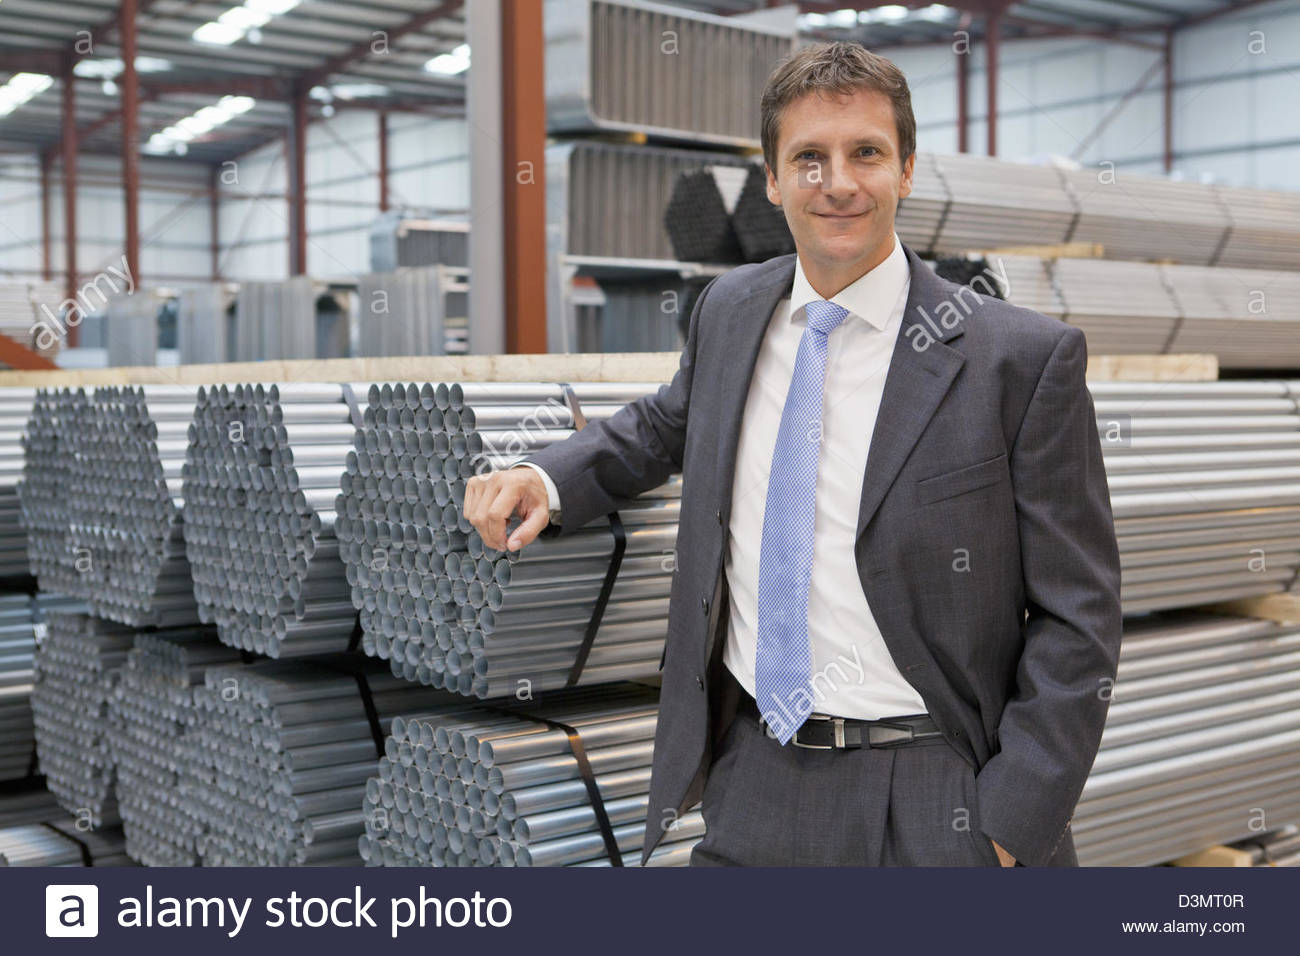 Portrait of confident businessman leaning on stacked steel bundles in warehouse - Stock Image